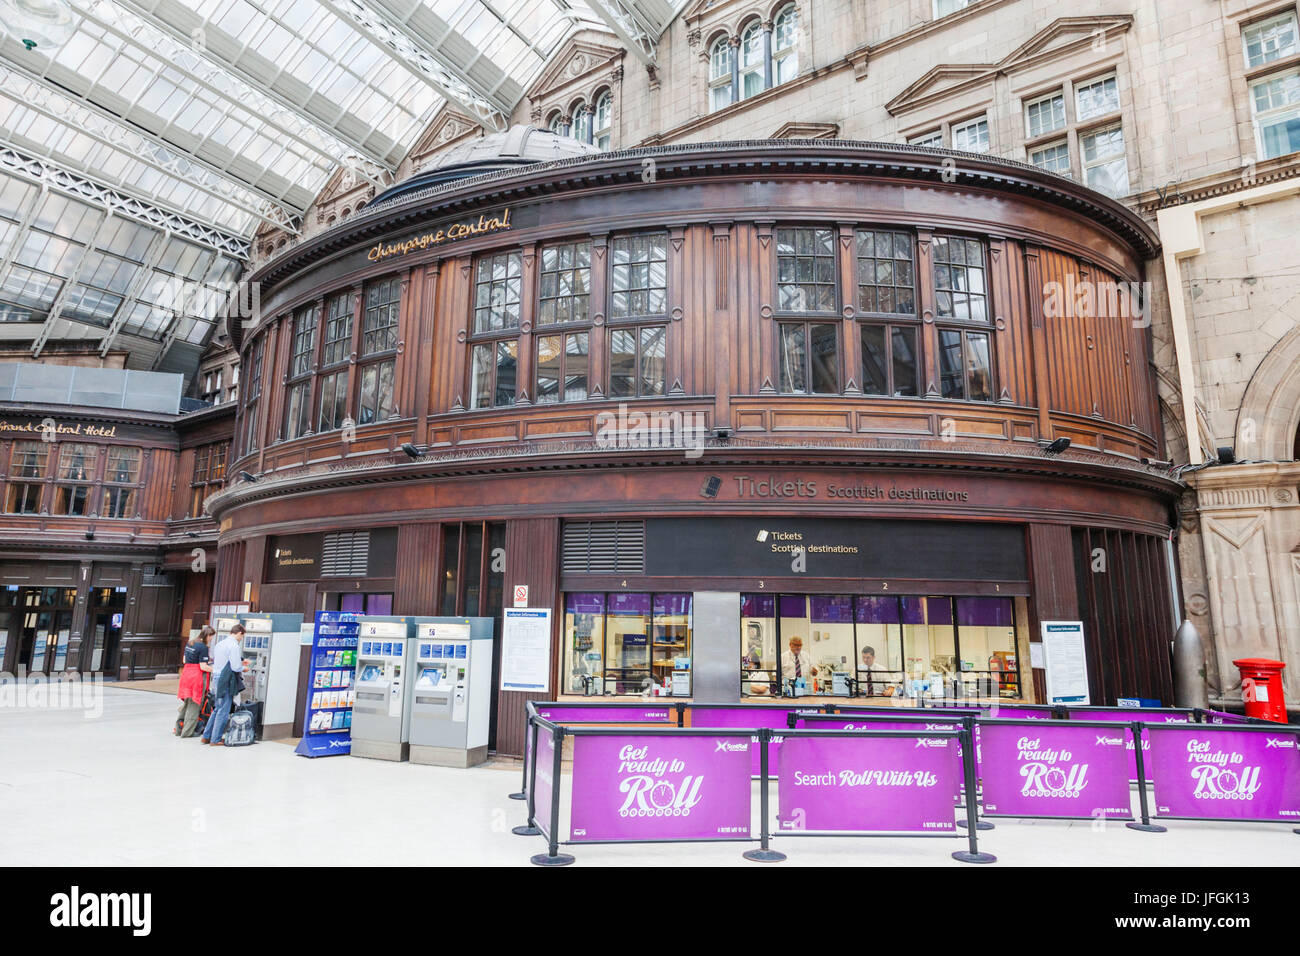 Scotland, Glasgow, Glasgow Central Railway Station, Ticket Office - Stock Image